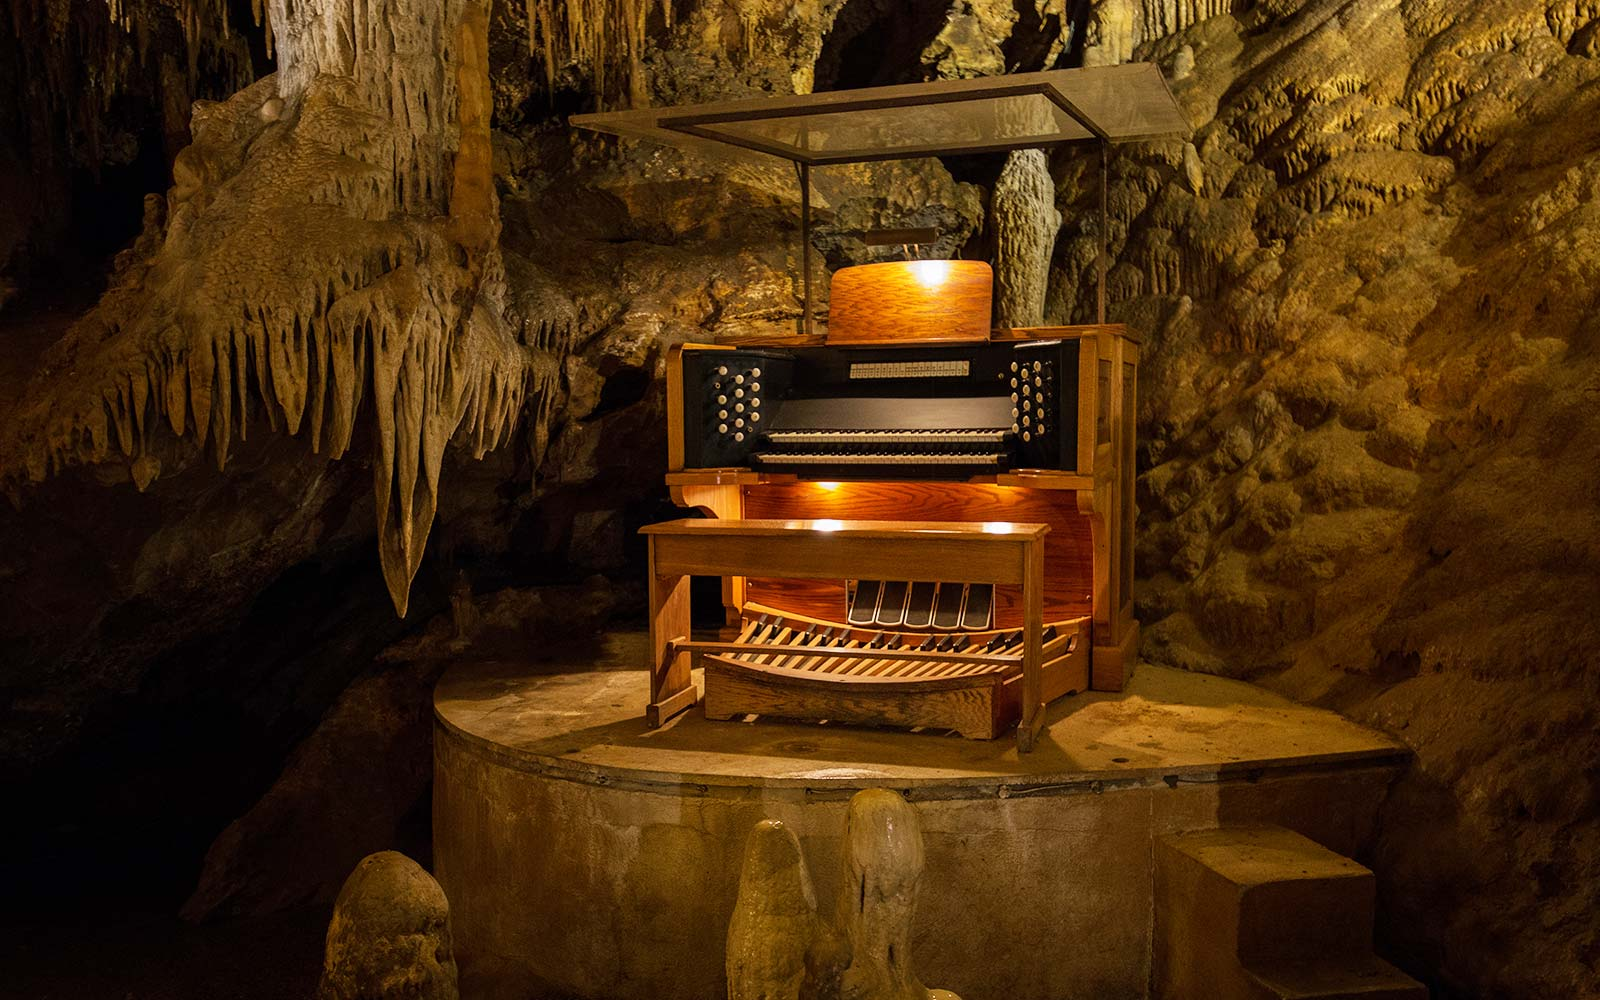 Stalagpipe organ caves